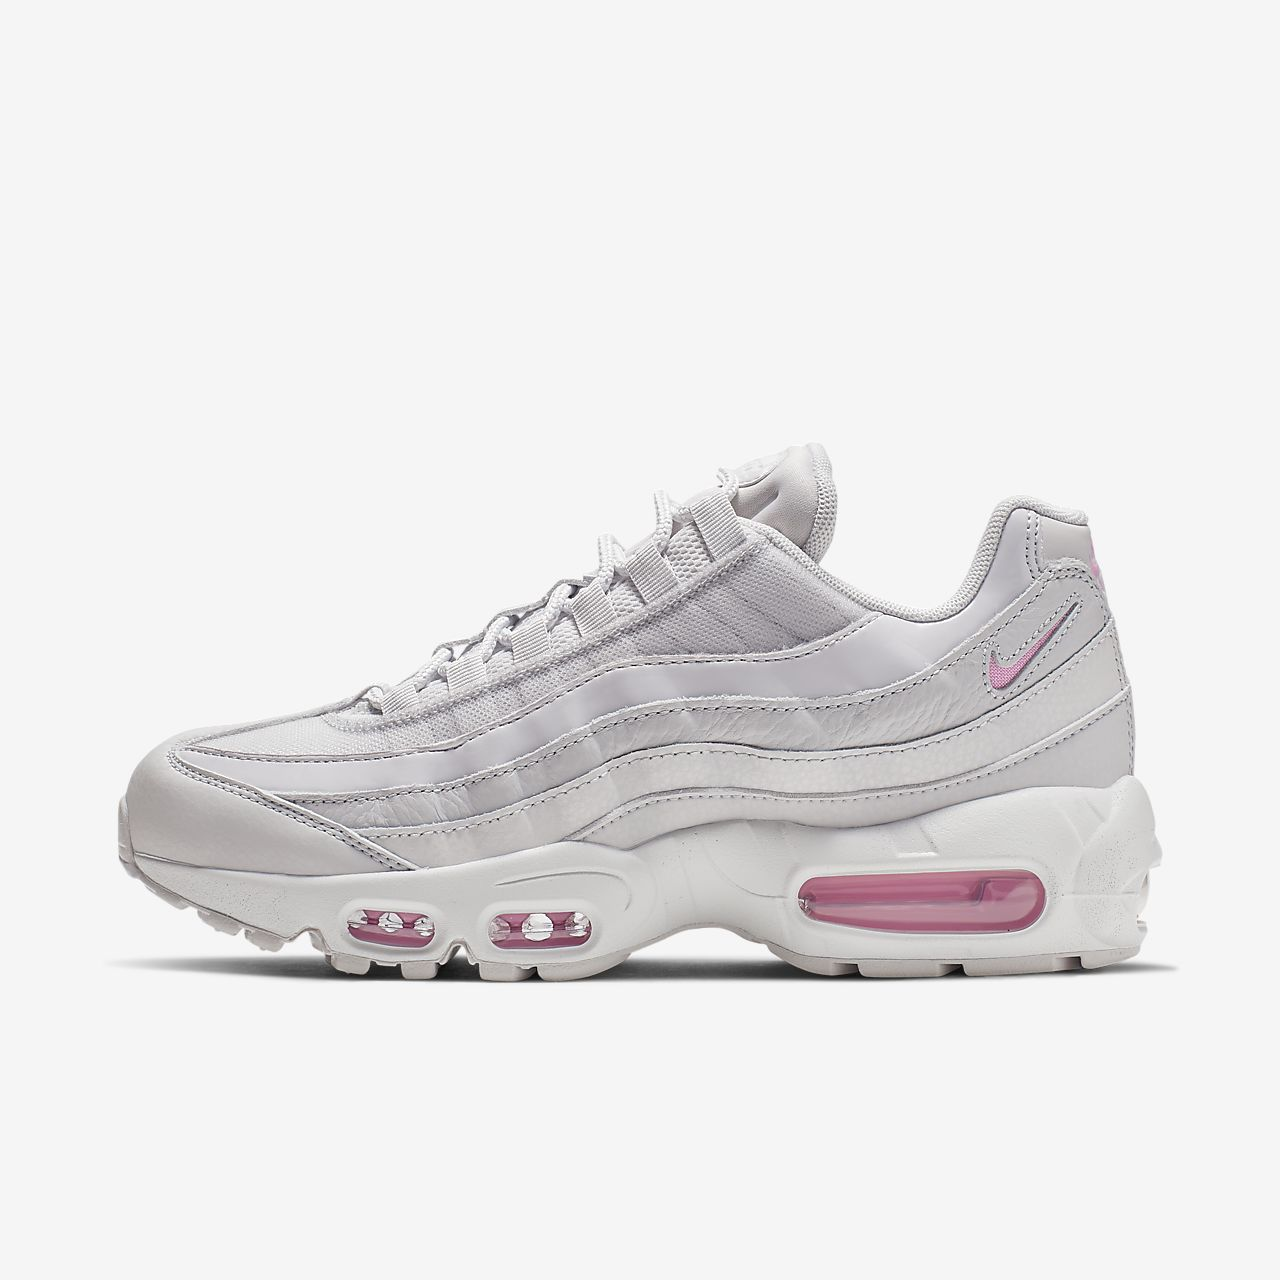 nike air max 95 se damenschuh